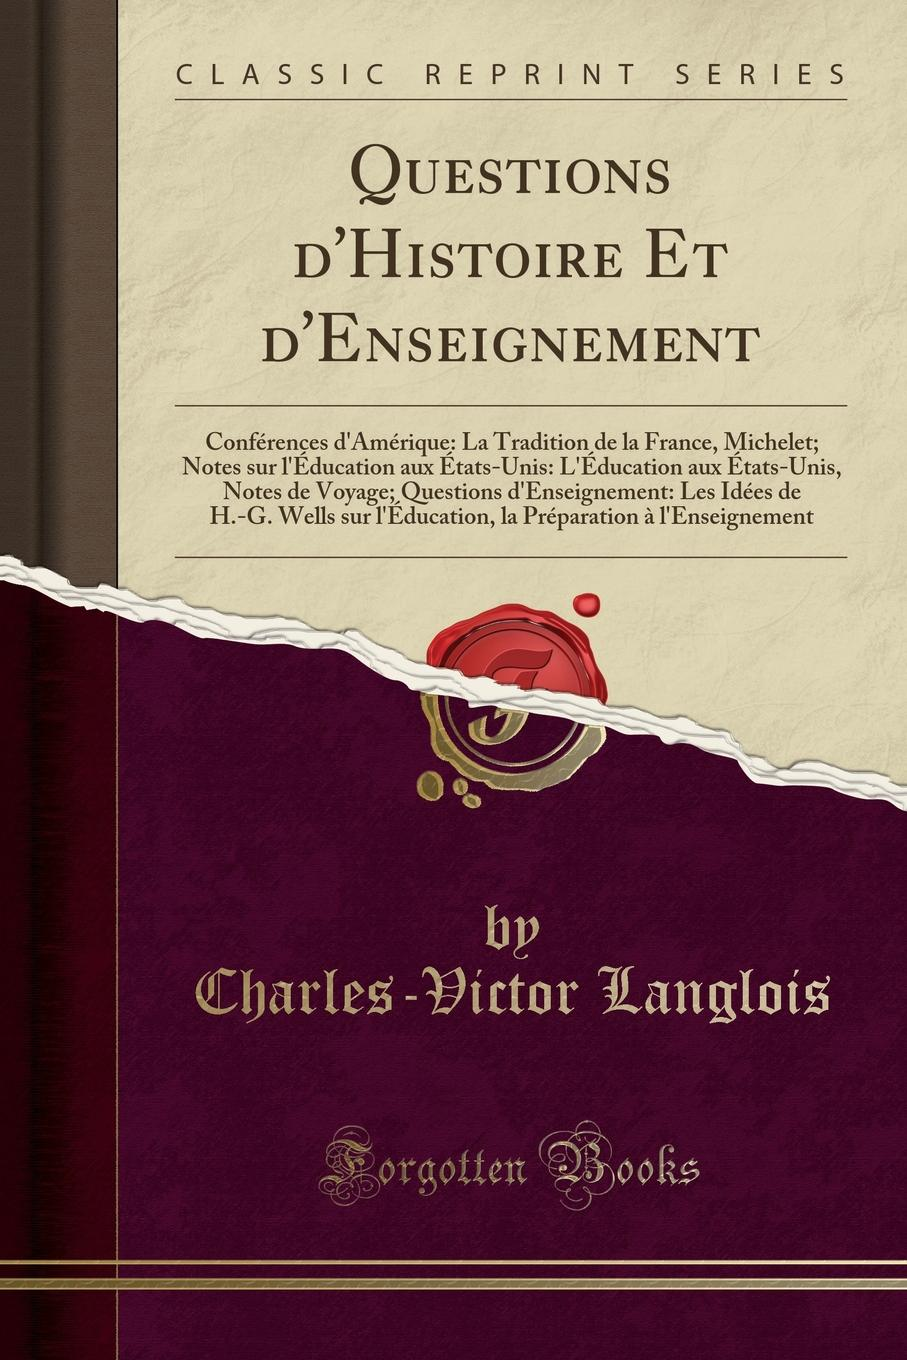 Questions d.Histoire Et d.Enseignement. Conferences d.Amerique: La Tradition de la France, Michelet; Notes sur l.Education aux Etats-Unis: L.Education aux Etats-Unis, Notes de Voyage; Questi